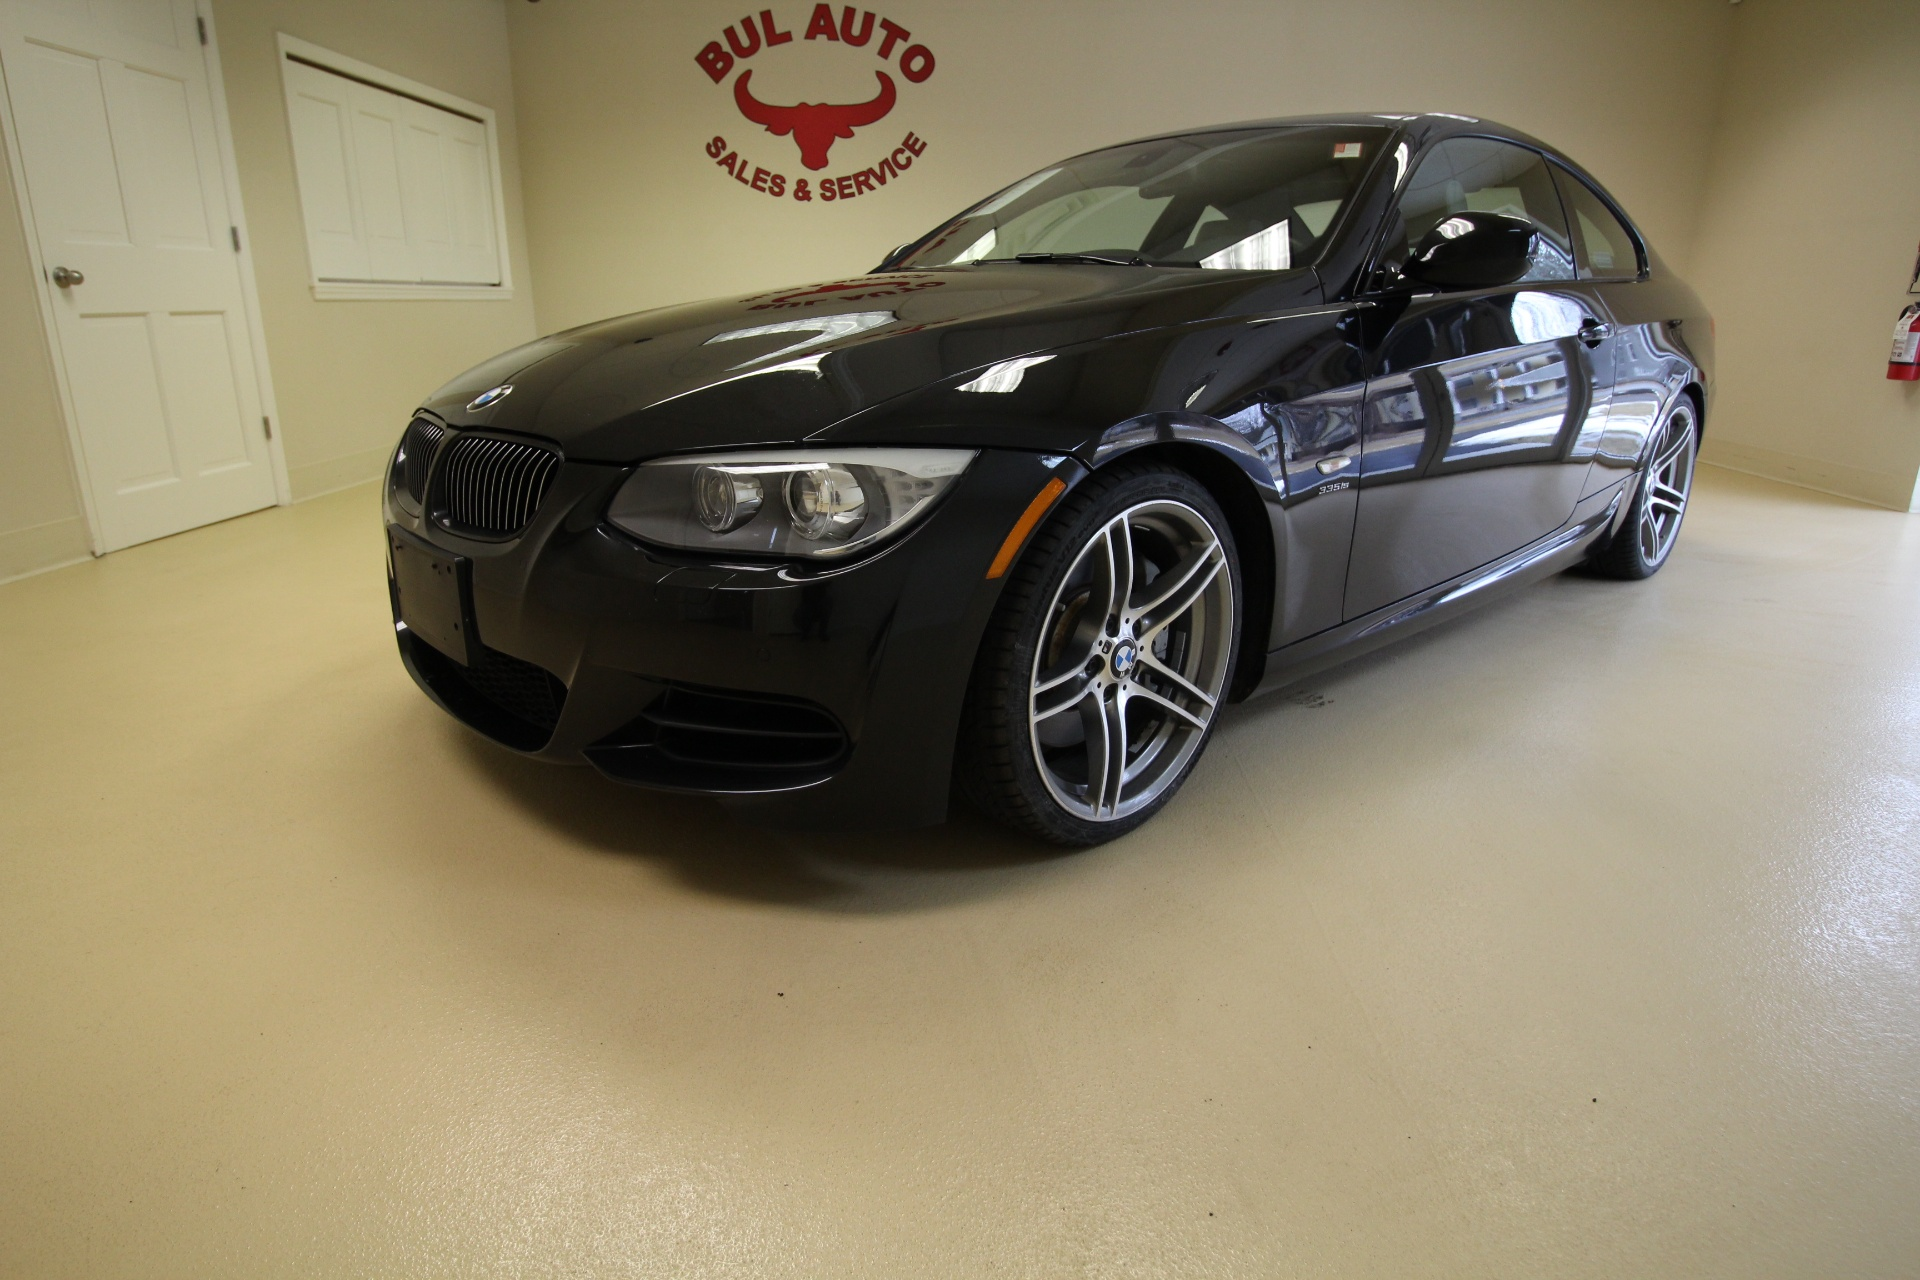 2012 bmw 3 series 335is coupe stock 18029 for sale near. Black Bedroom Furniture Sets. Home Design Ideas